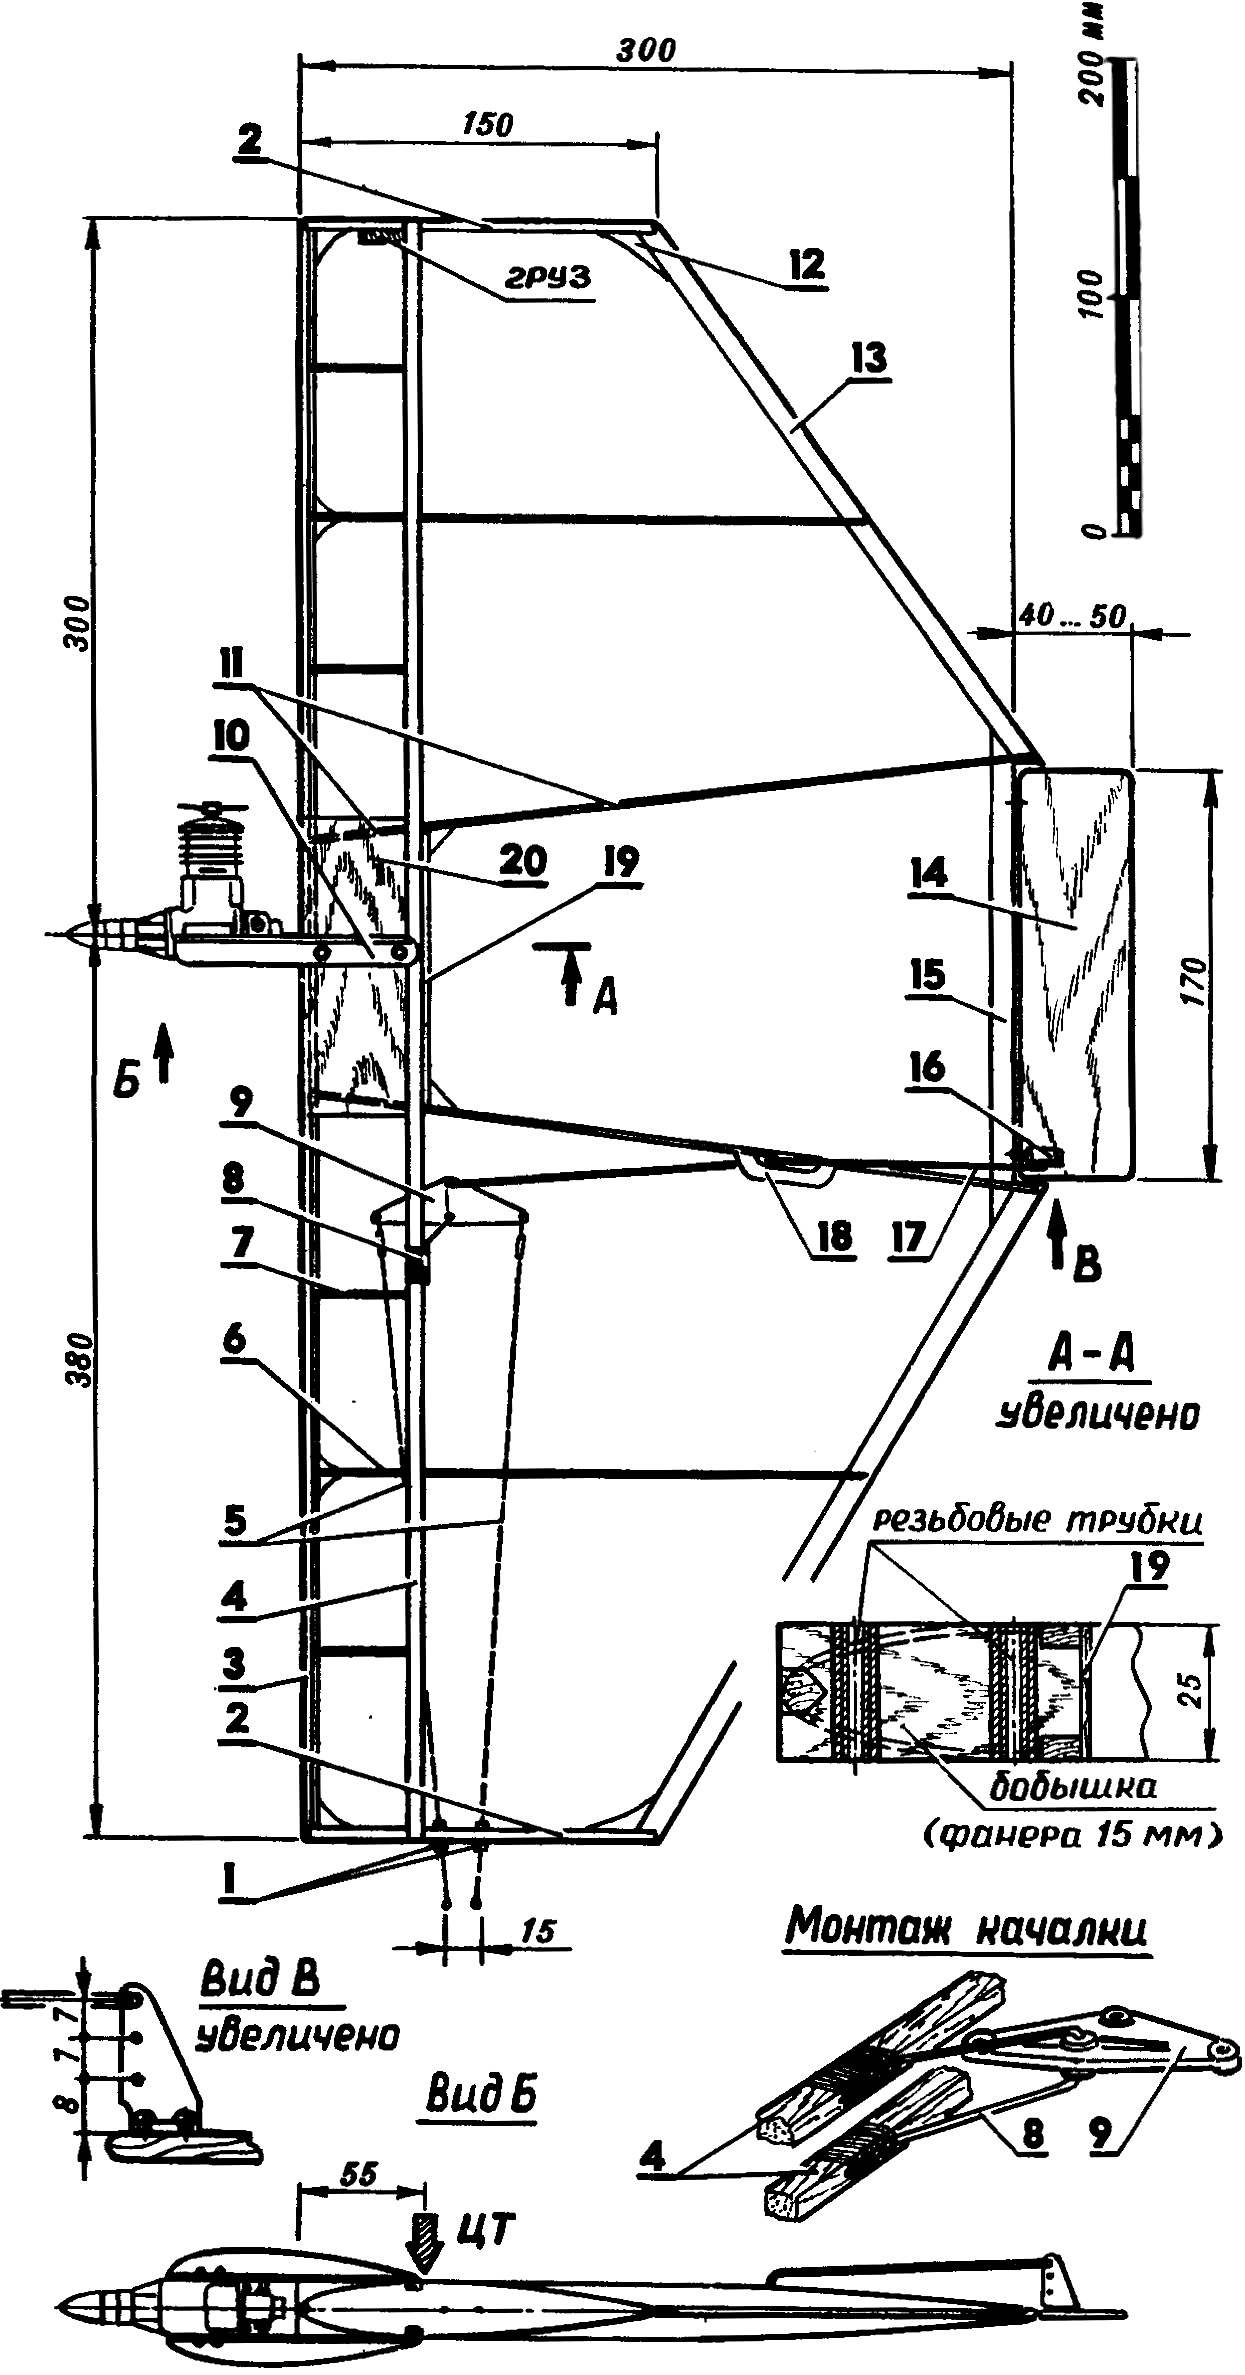 Fig. 1. Simplified model for air combat under the engine MARZ-2.5 million.